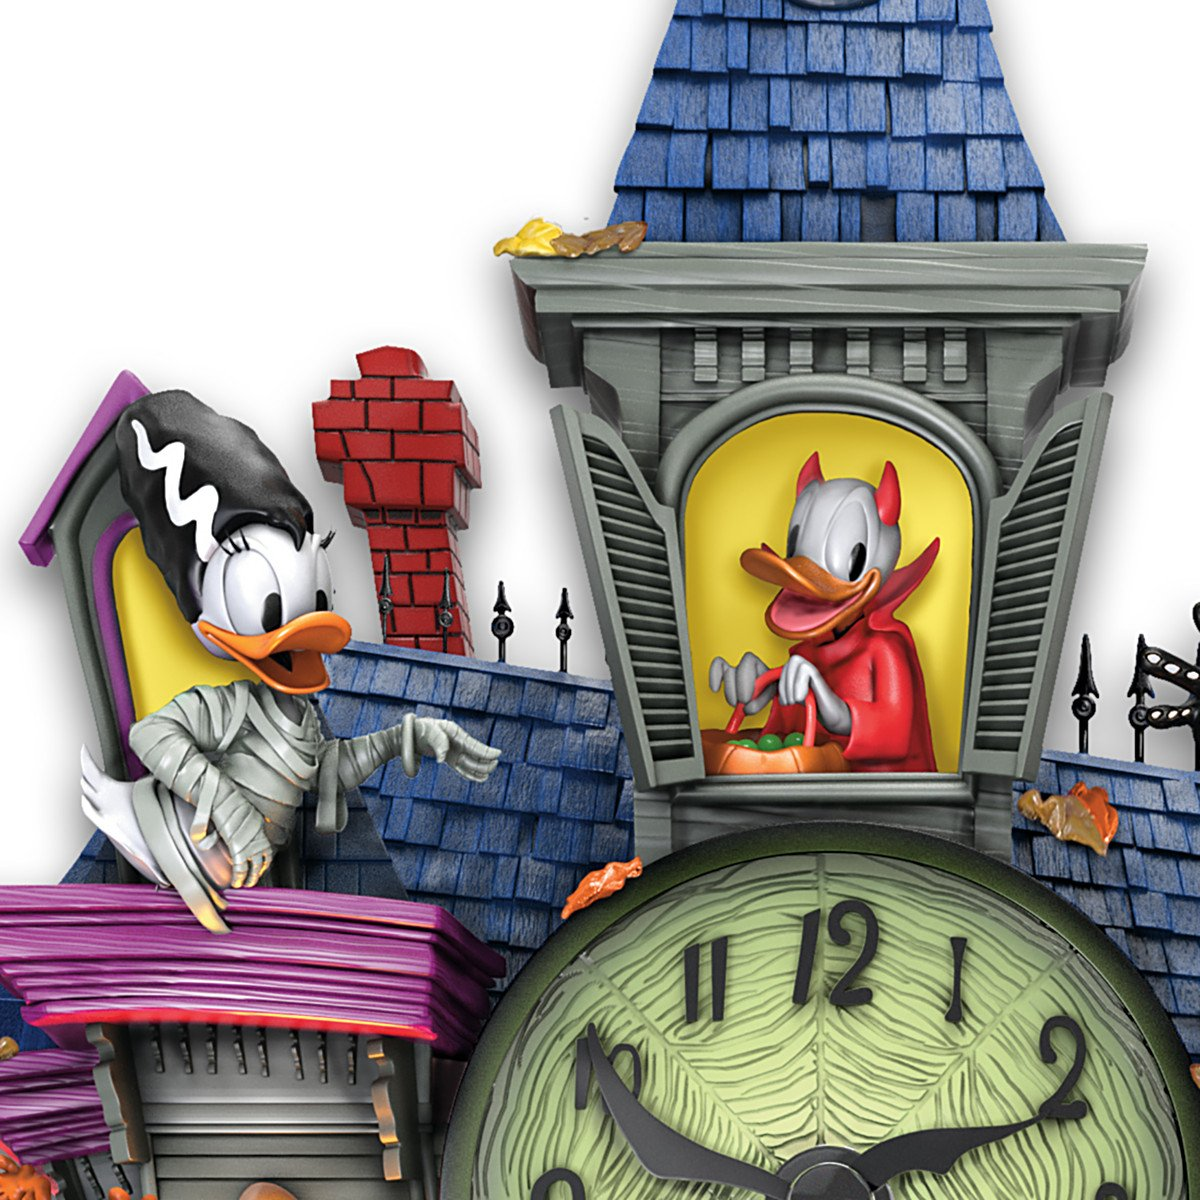 Amazon.com: Disney Halloween Themed Reloj de cuco con 9 ...